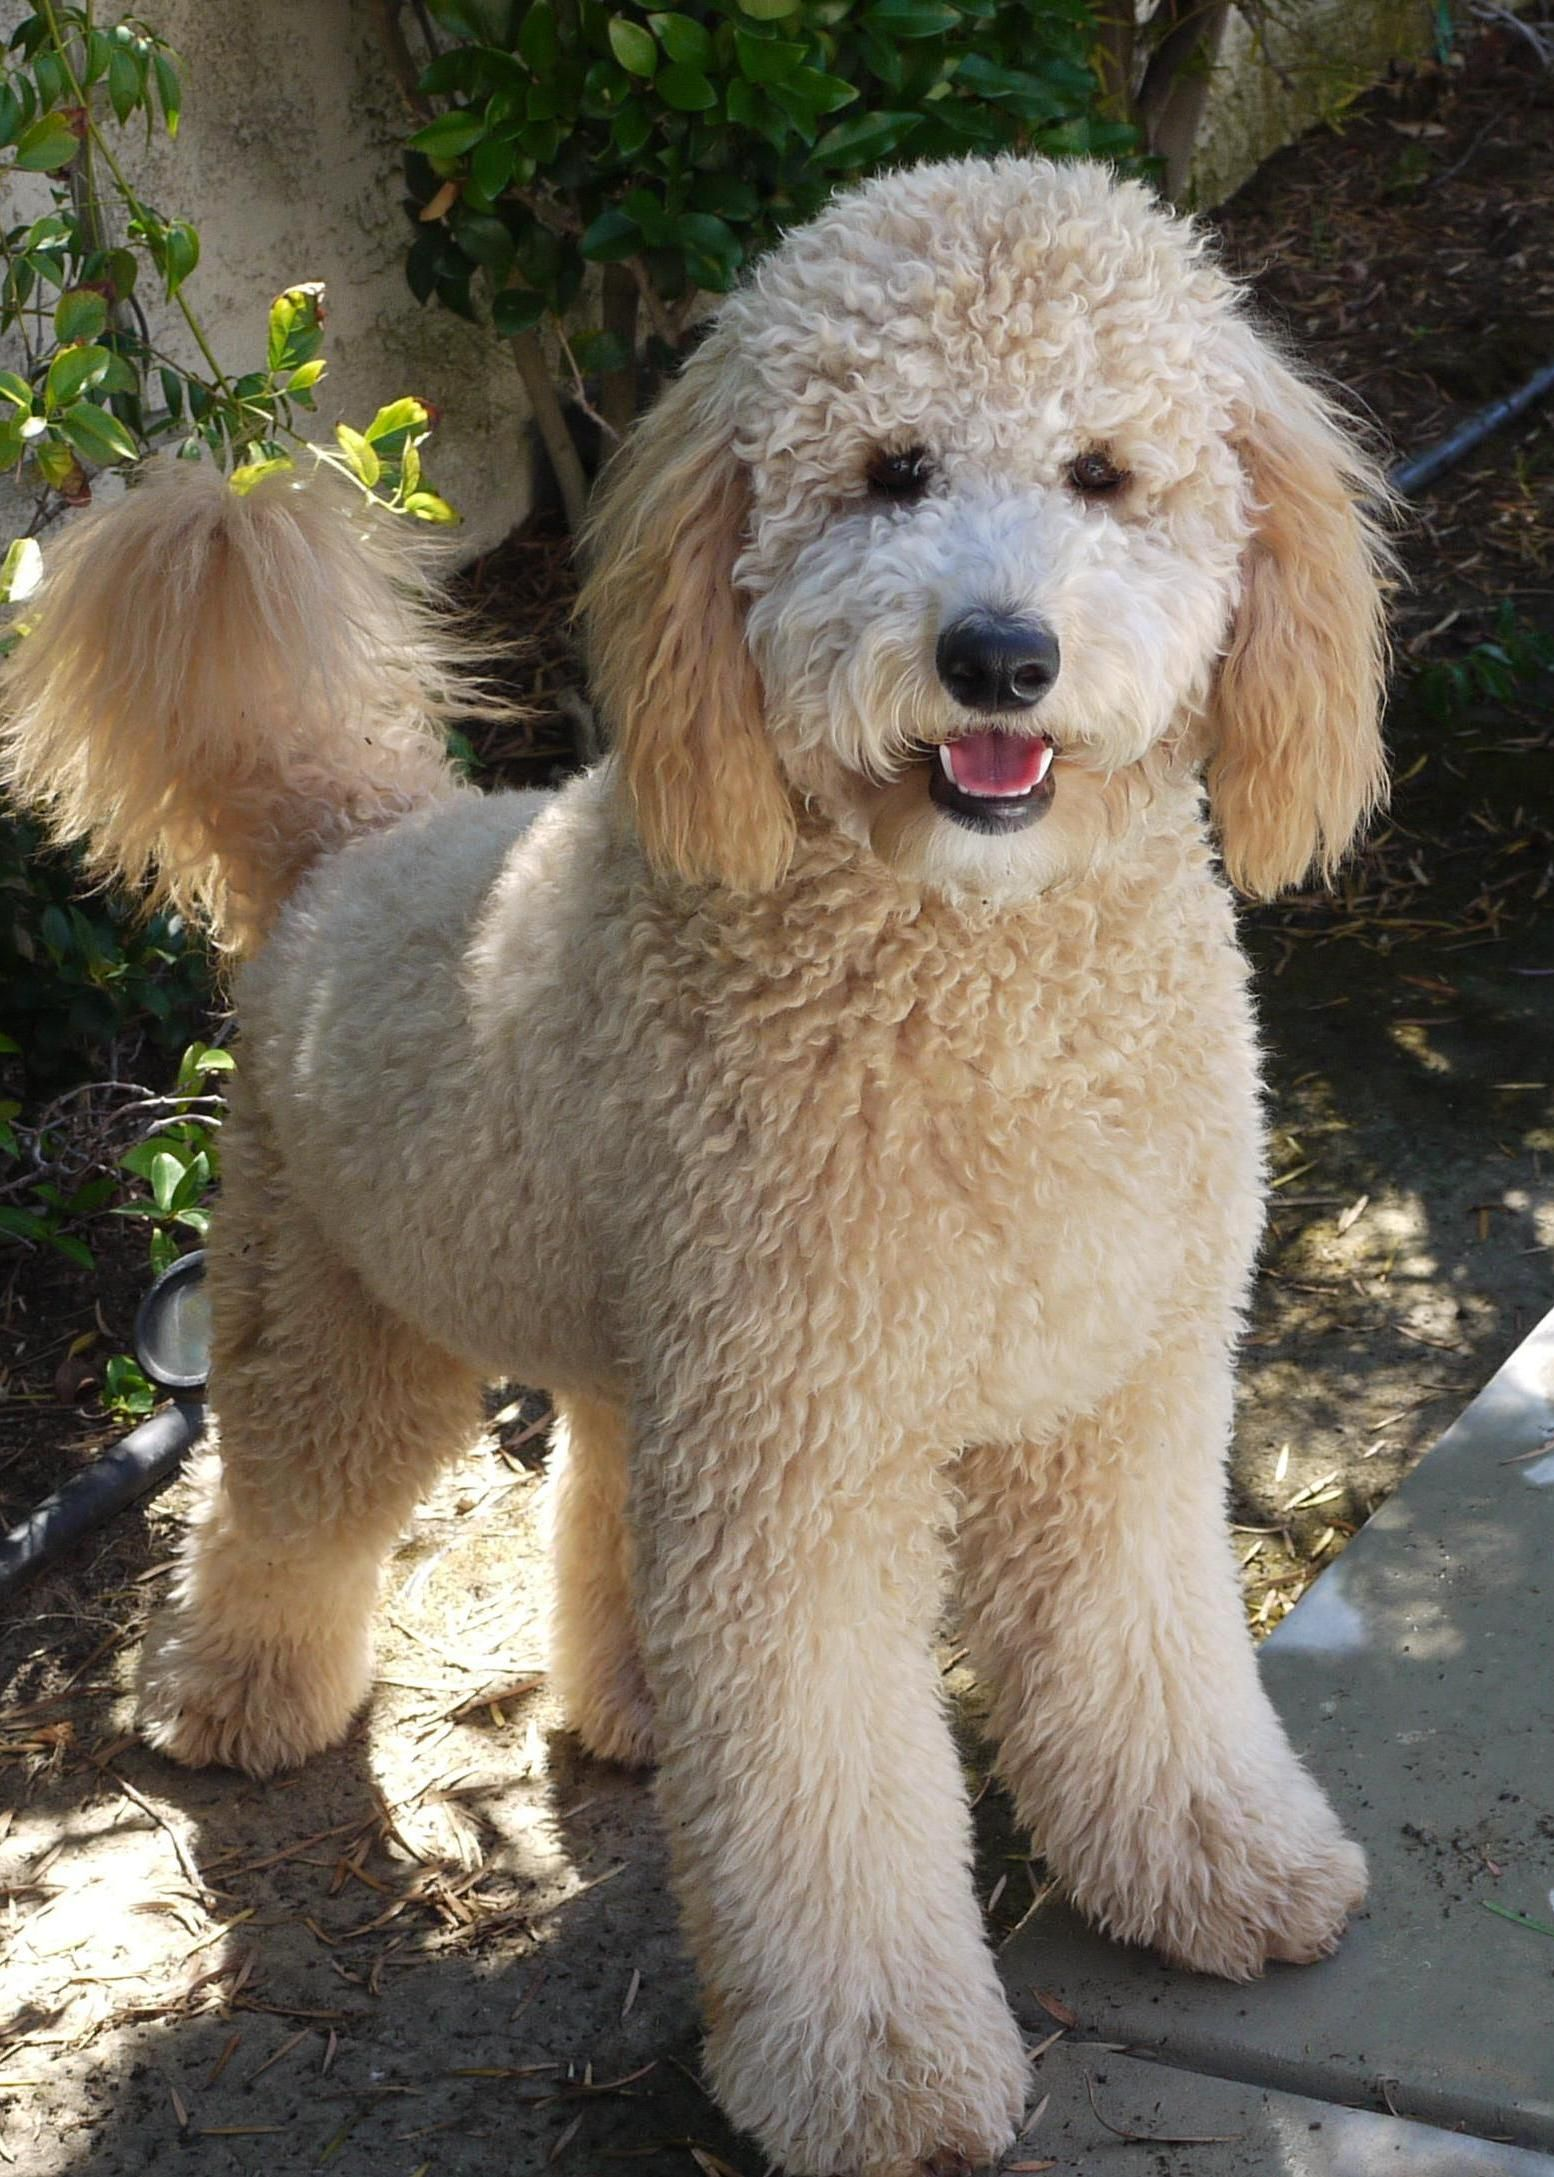 River Doodles Home Raised Goldendoodle & Bernedoodle Puppies of